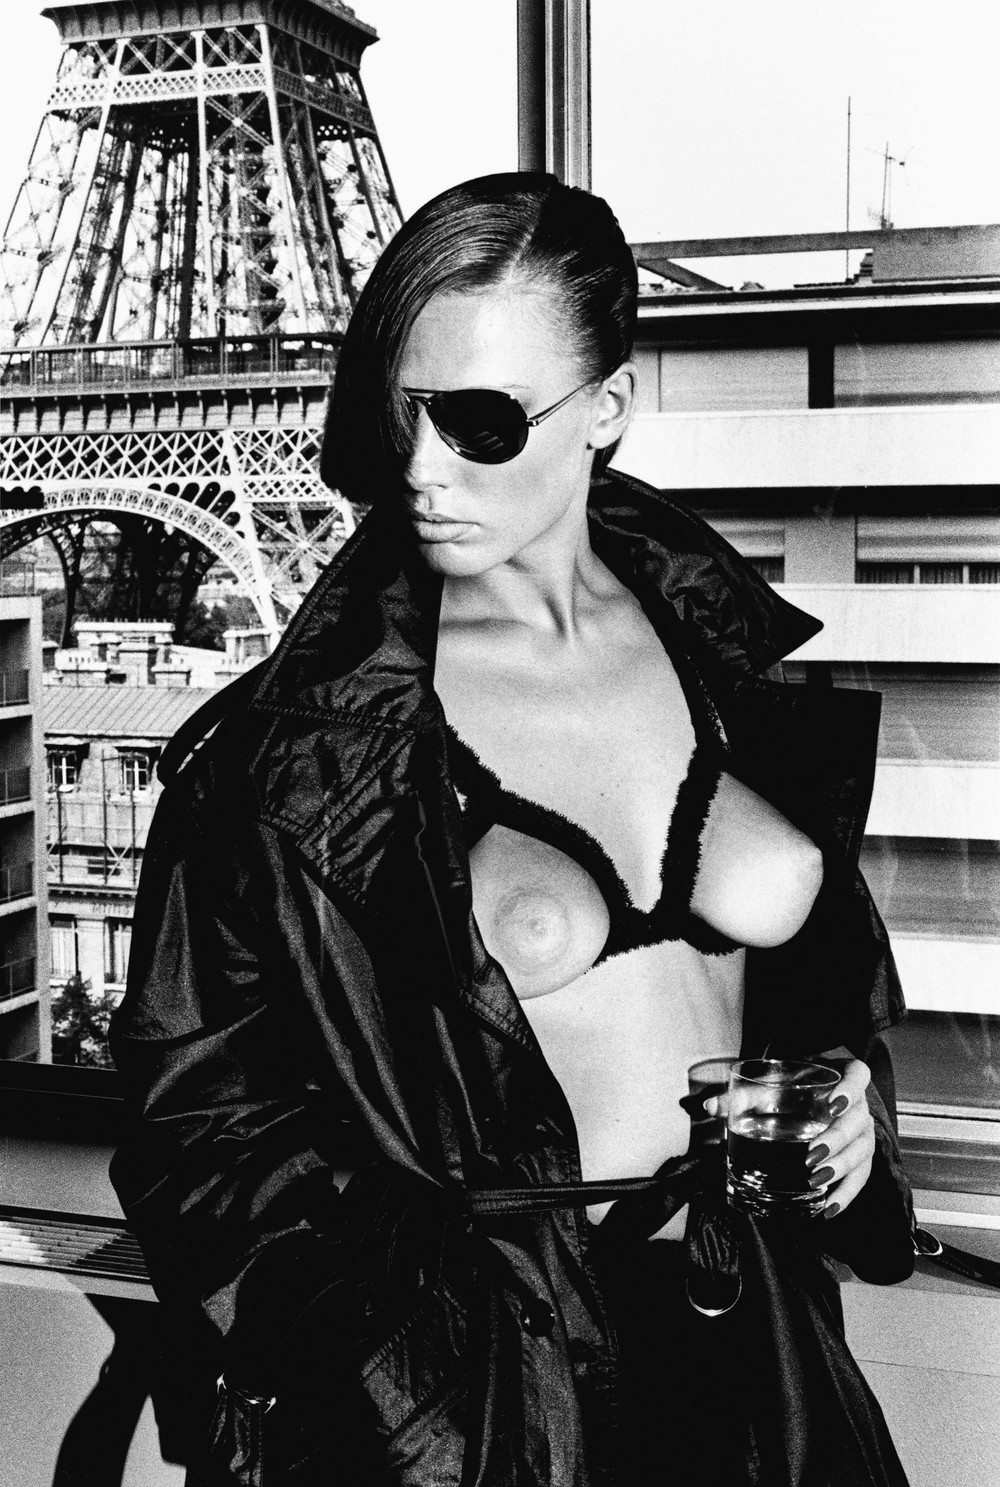 Gunilla-Bergstrom_Paris-1976_copyright-Helmut-Newton-Estate.jpg